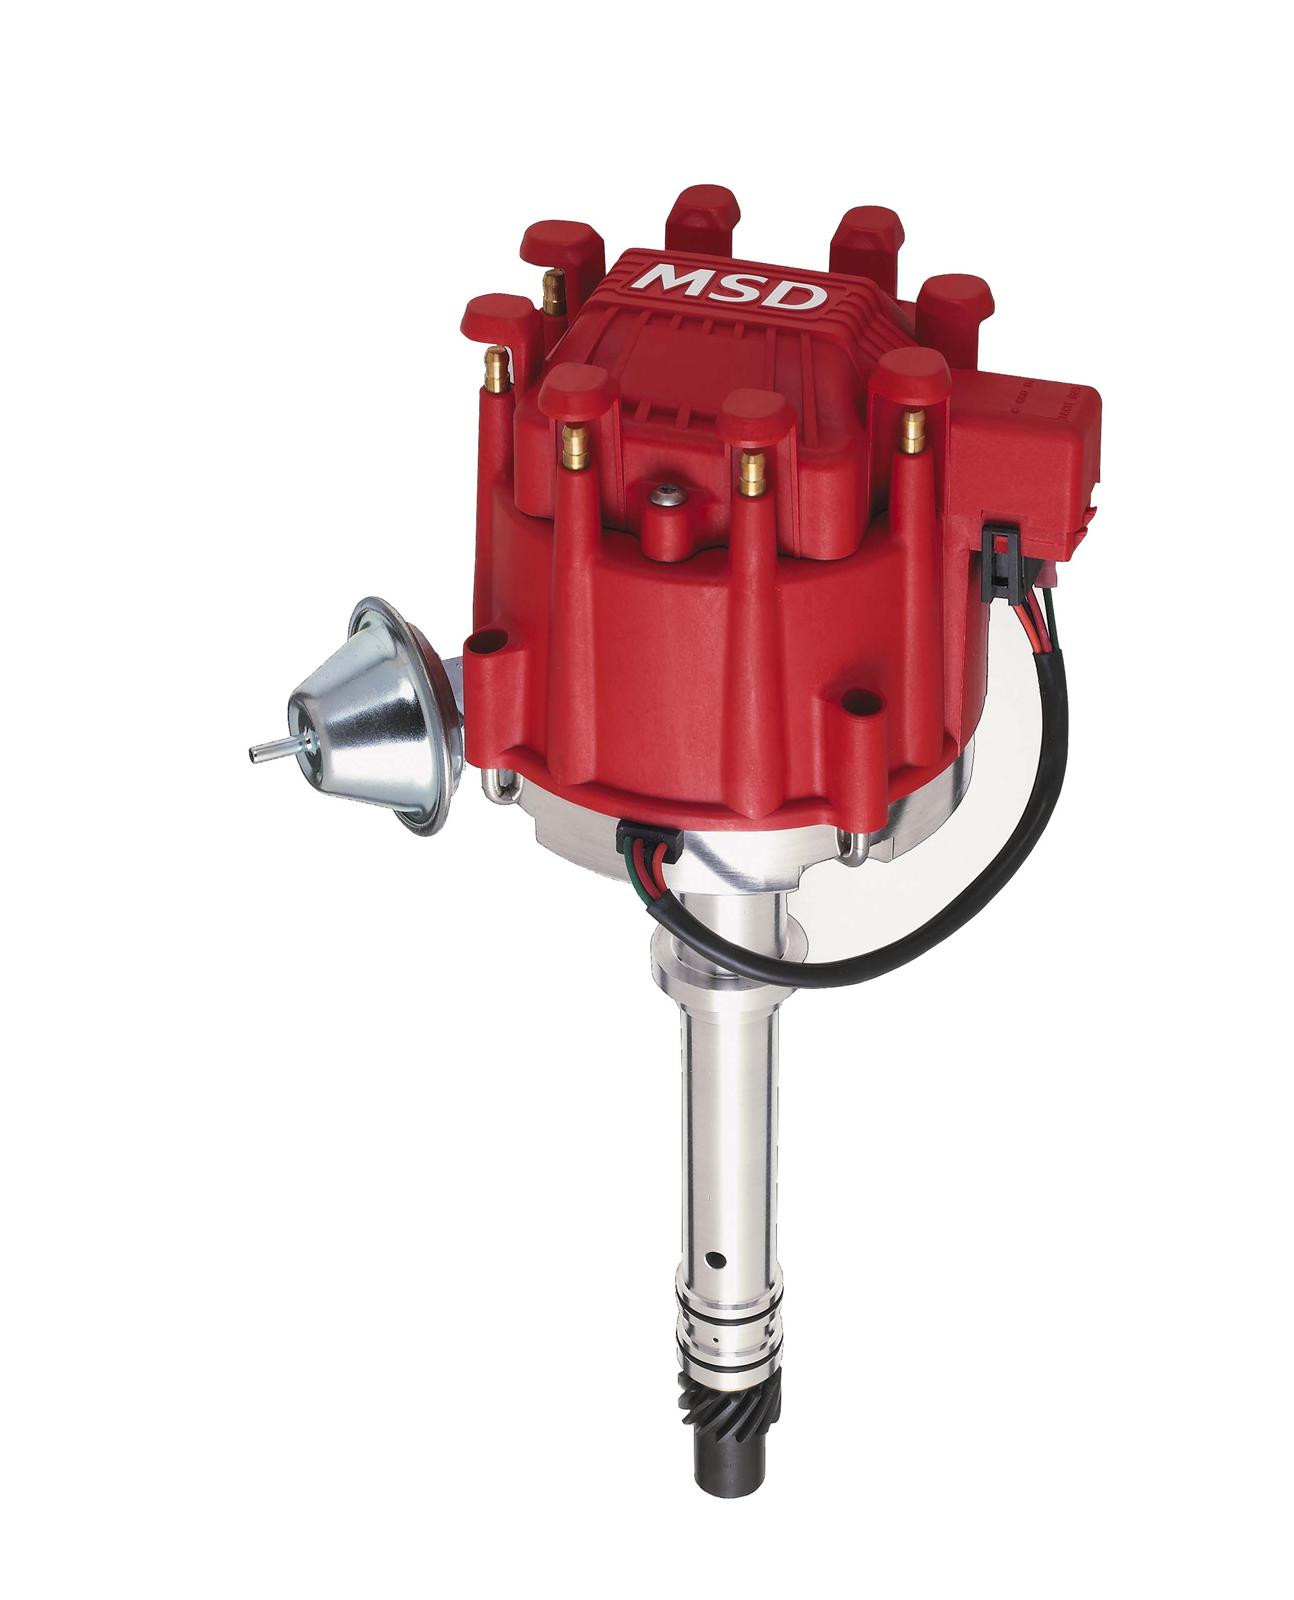 Hei System in addition Maxresdefault as well C A moreover C A Cb besides Hei Cap. on gm hei distributor ignition module